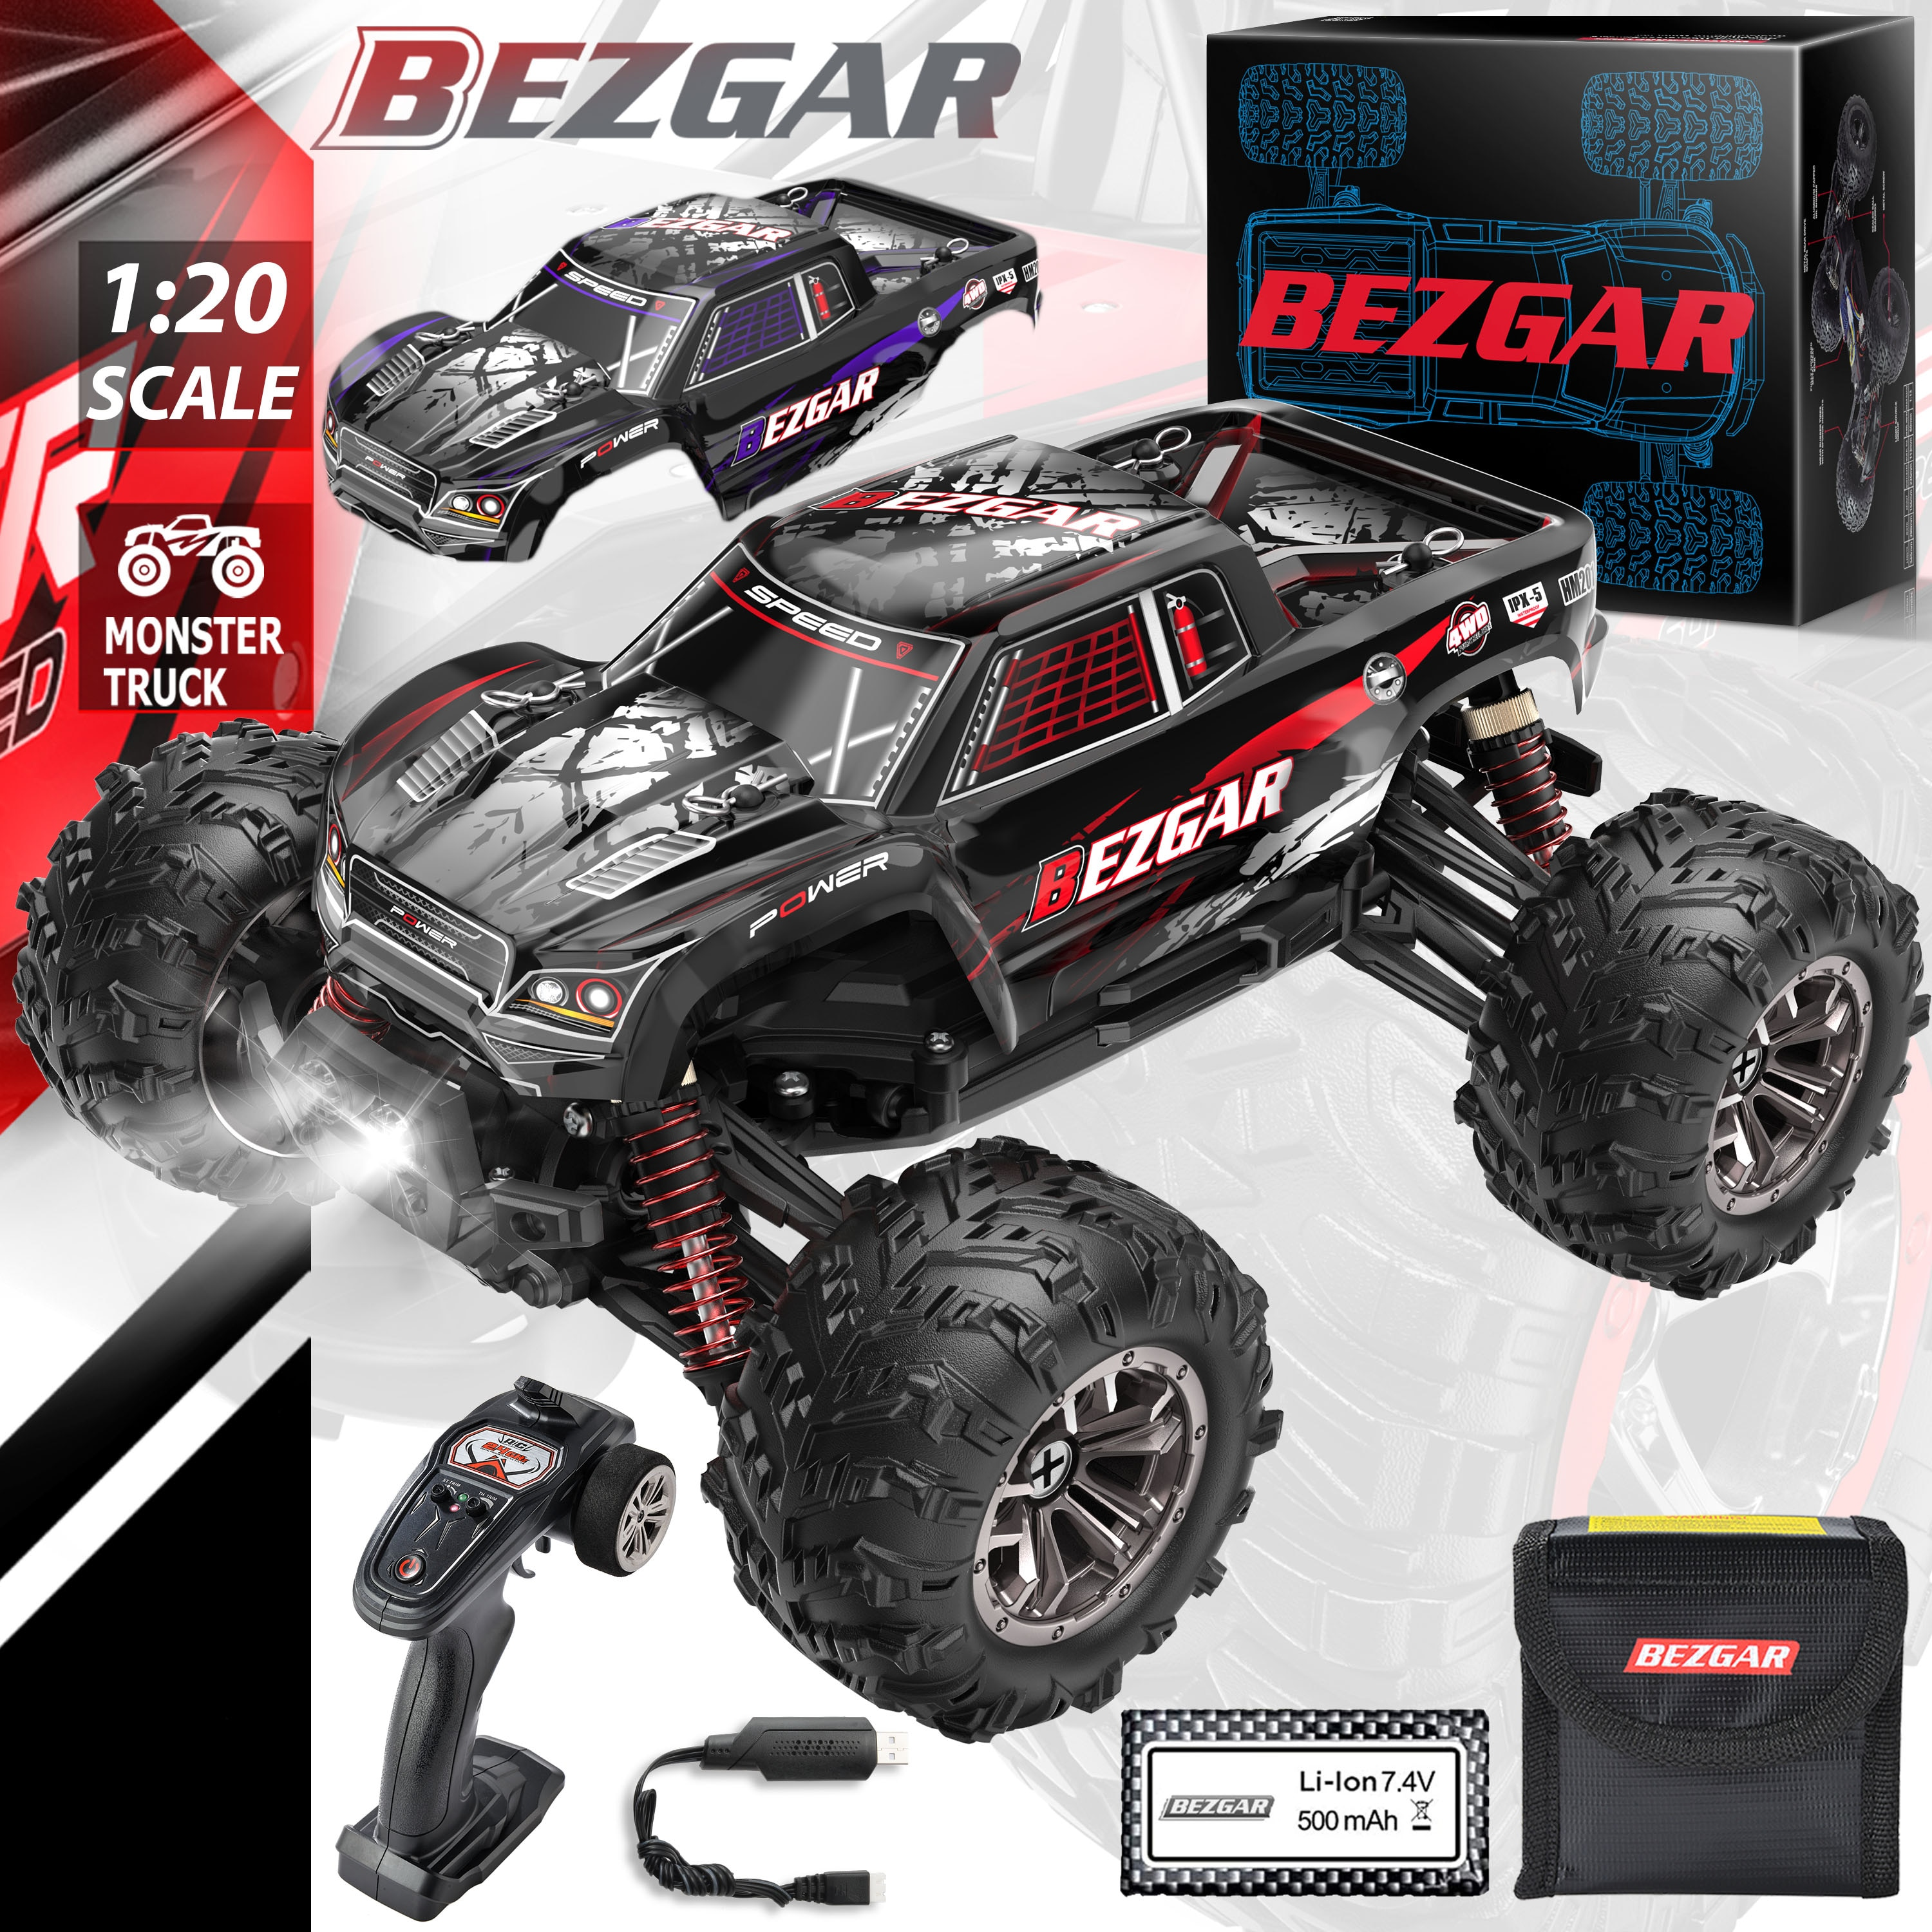 BEZGAR HM201 Hobby RC Car 1:20 All-Terrain 30Km/h Off-Road 4WD Remote Control Monster Truck Crawler with Battery for Kids Adults